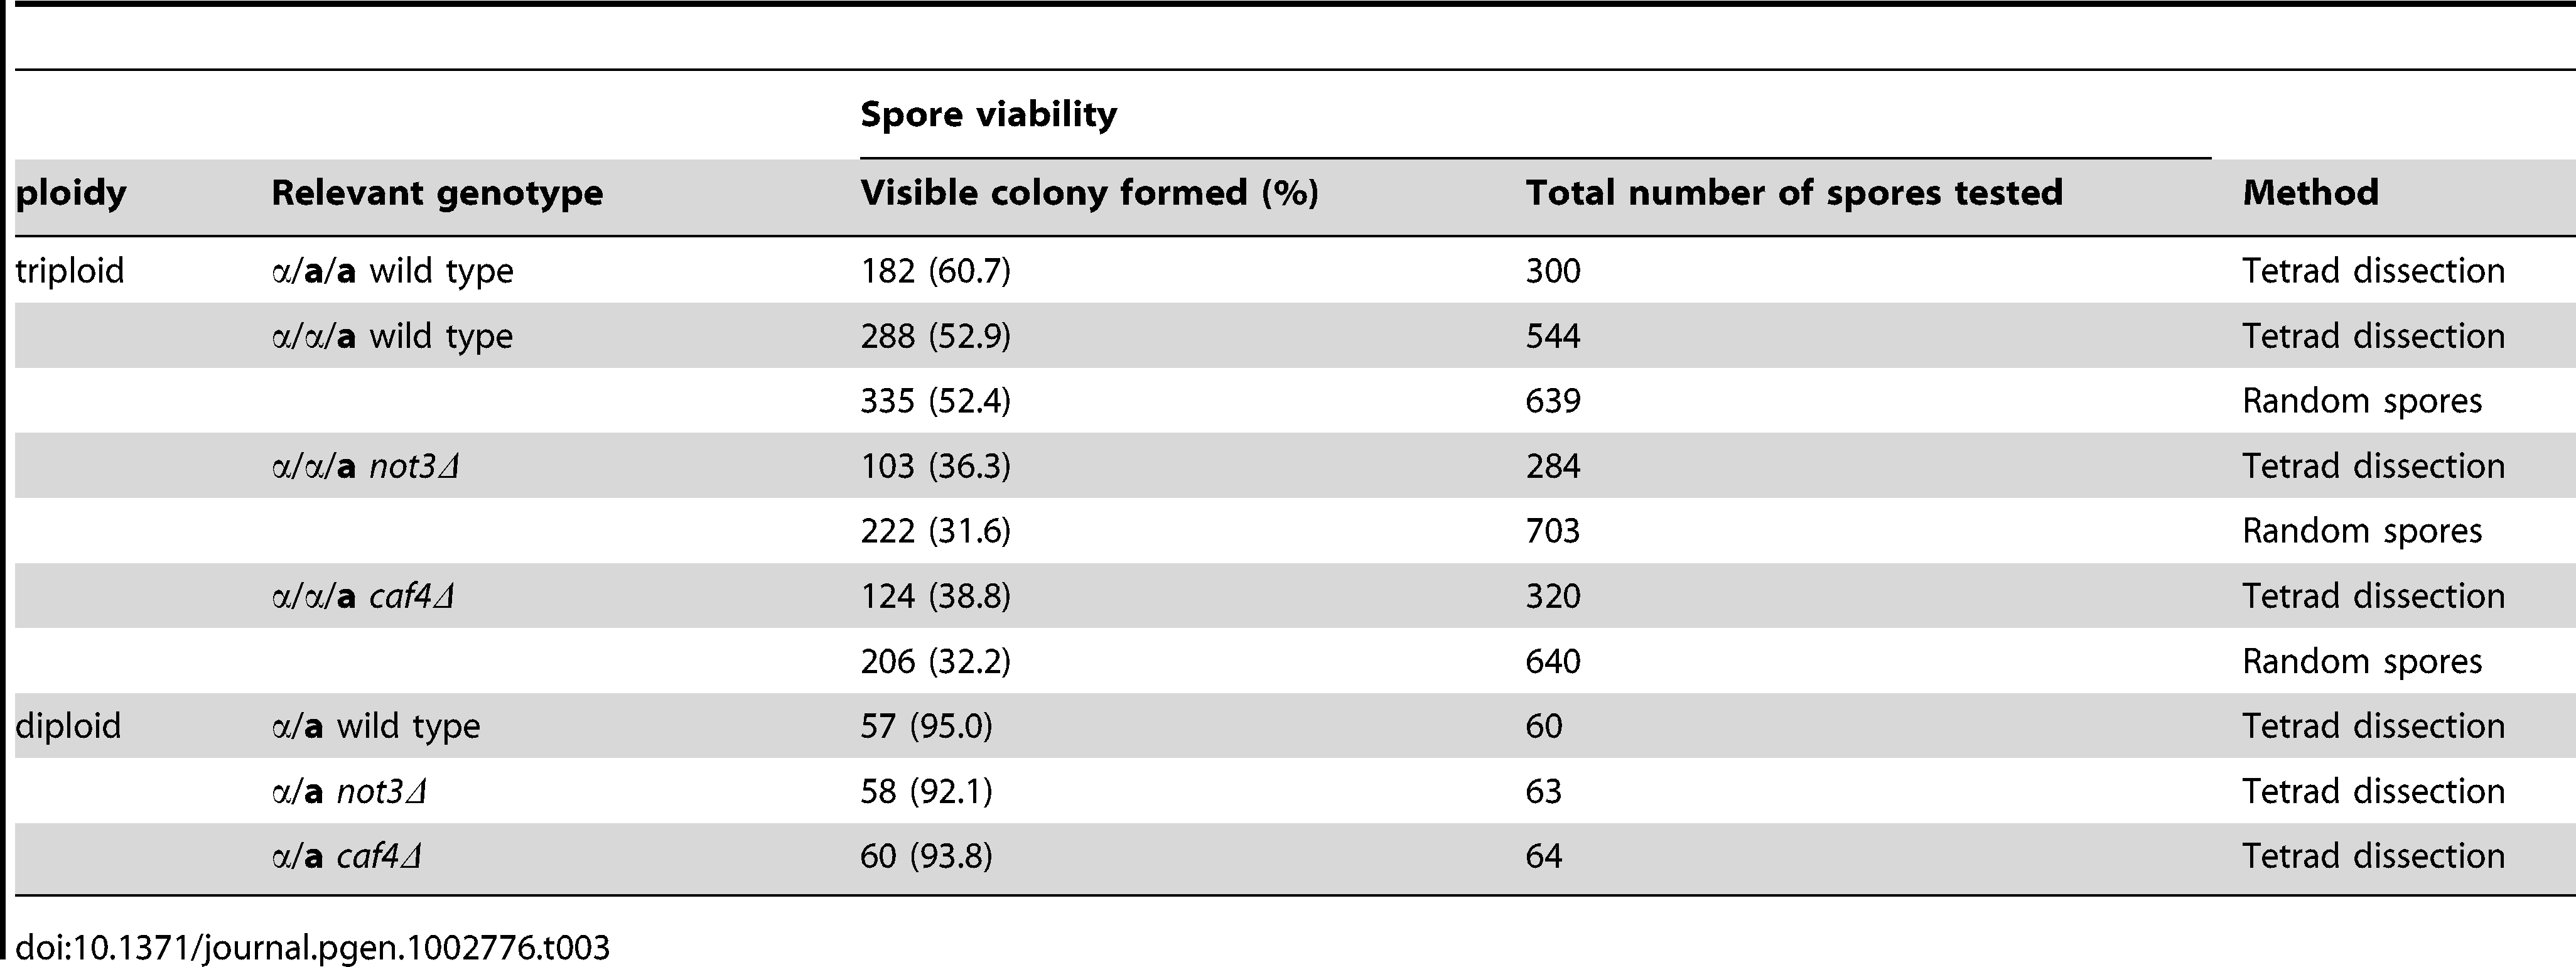 Viability of spores produced in triploid cells in <i>S. cerevisiae</i>.